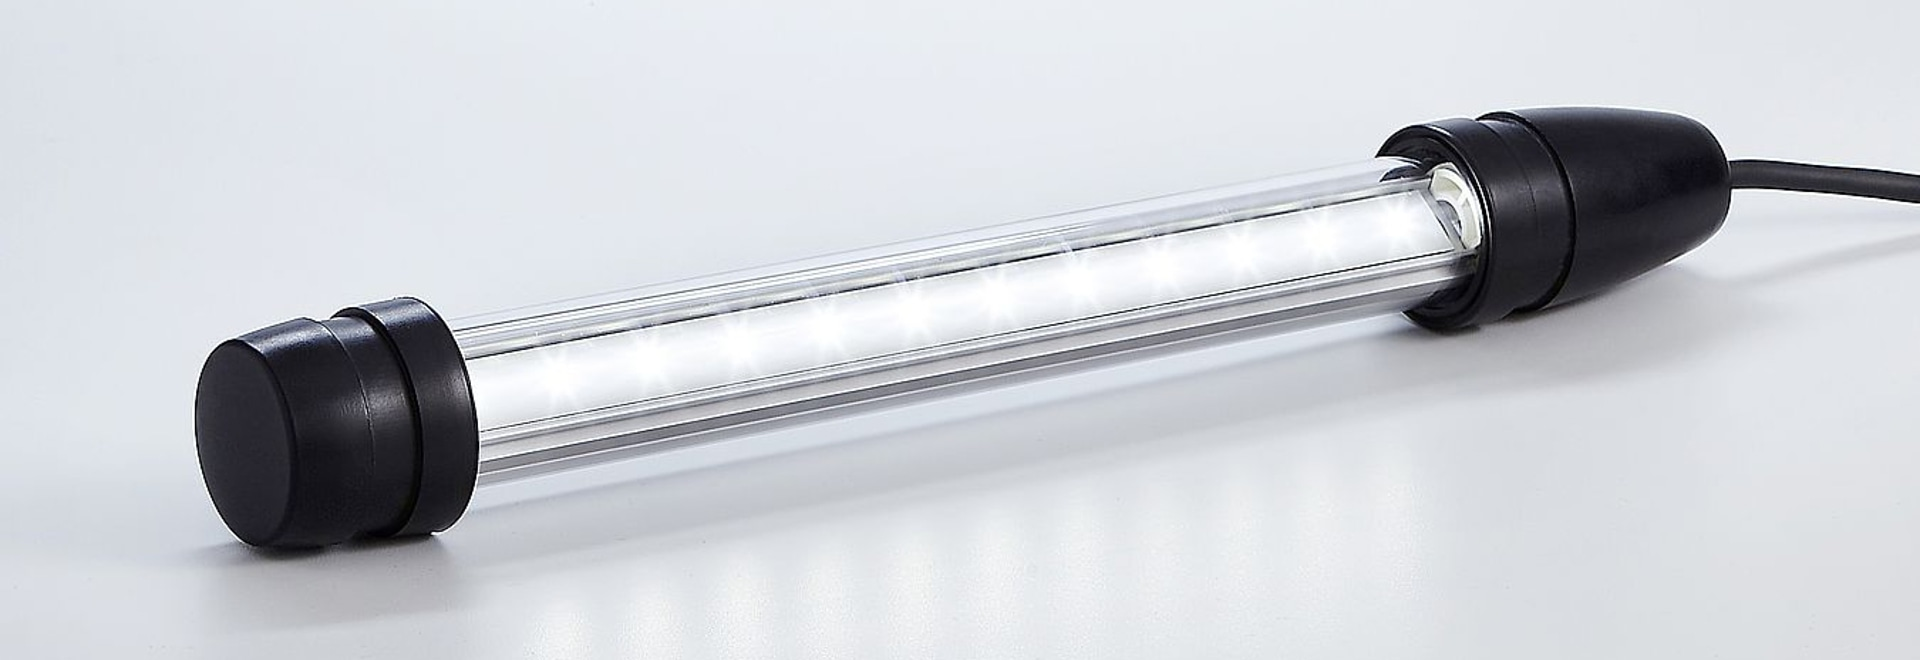 Lightweight, robust LED tubular lights from R. STAHL